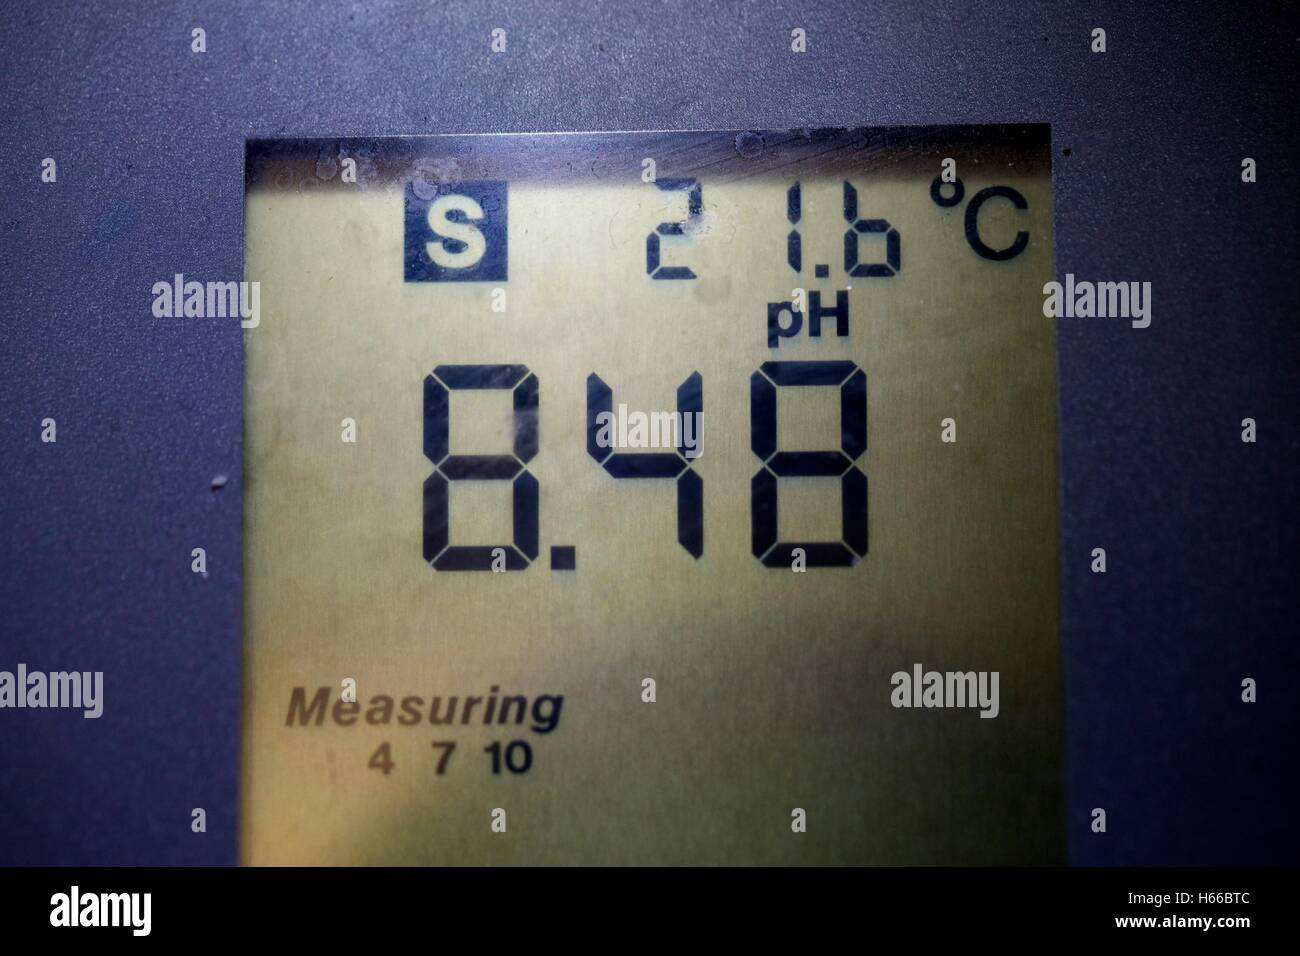 pH meter LCD panel showing a pH of 8.48. - Stock Image